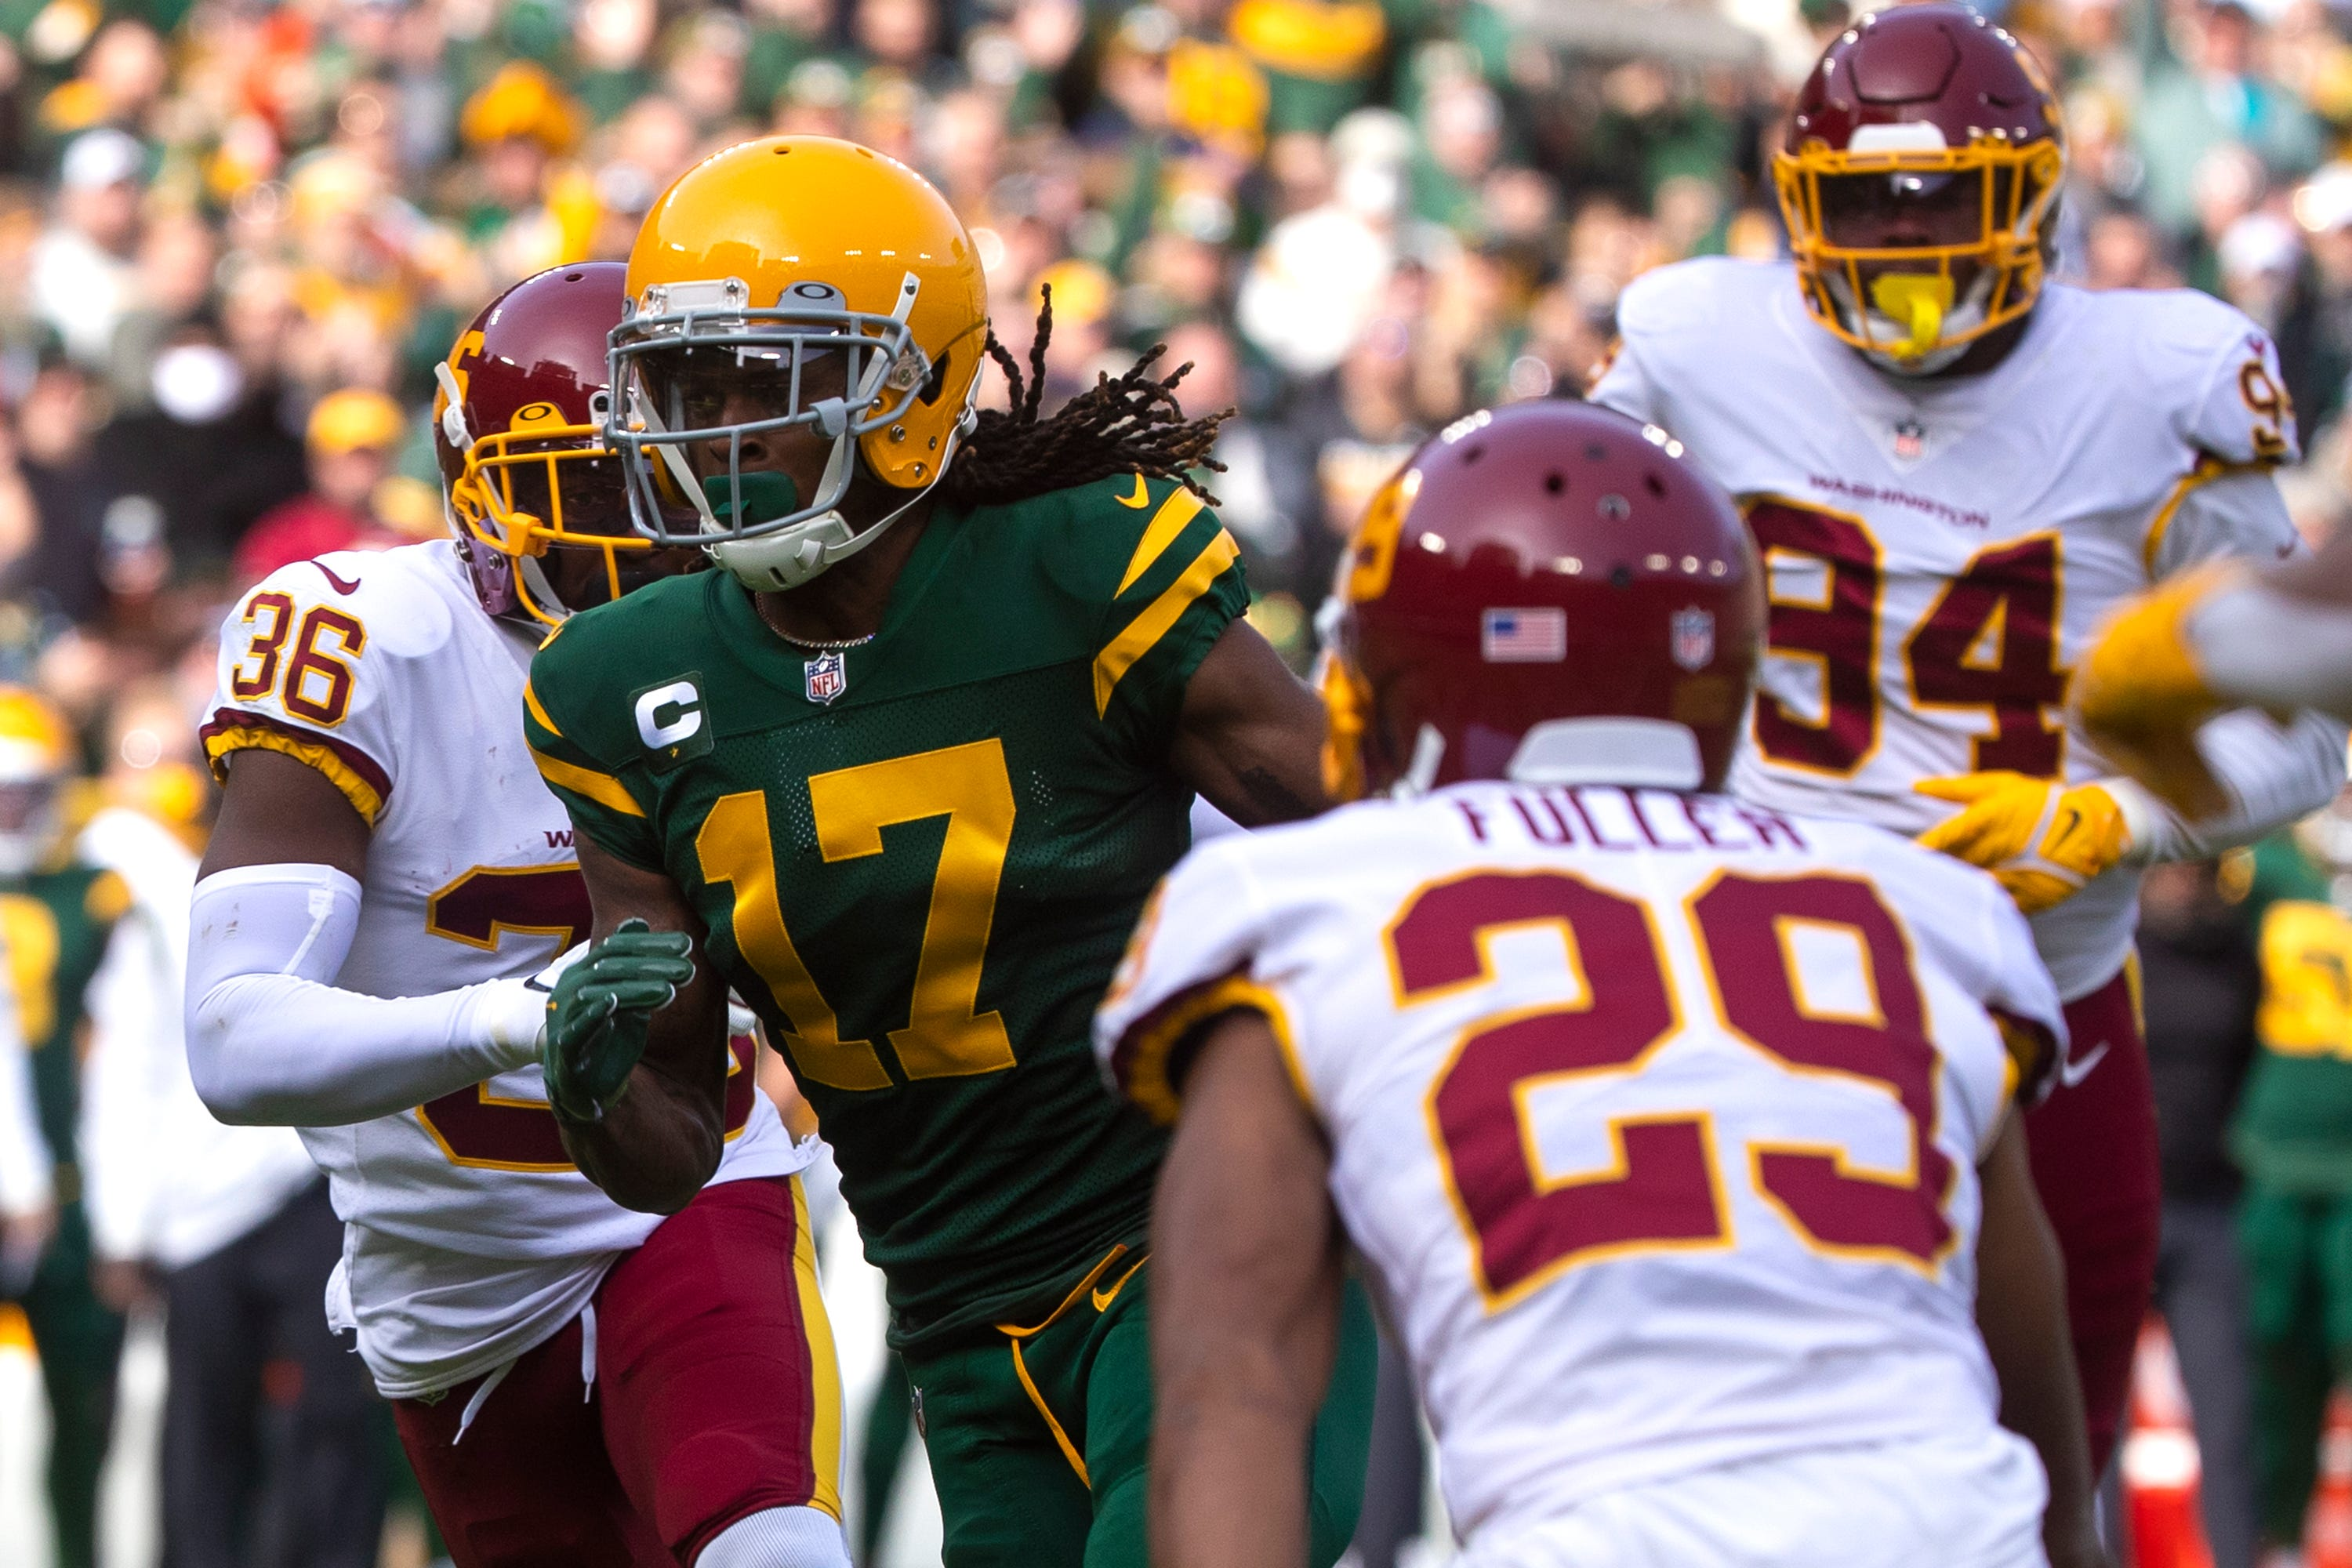 Green Bay Packers-Washington Football Team live game blog with Tom Silverstein